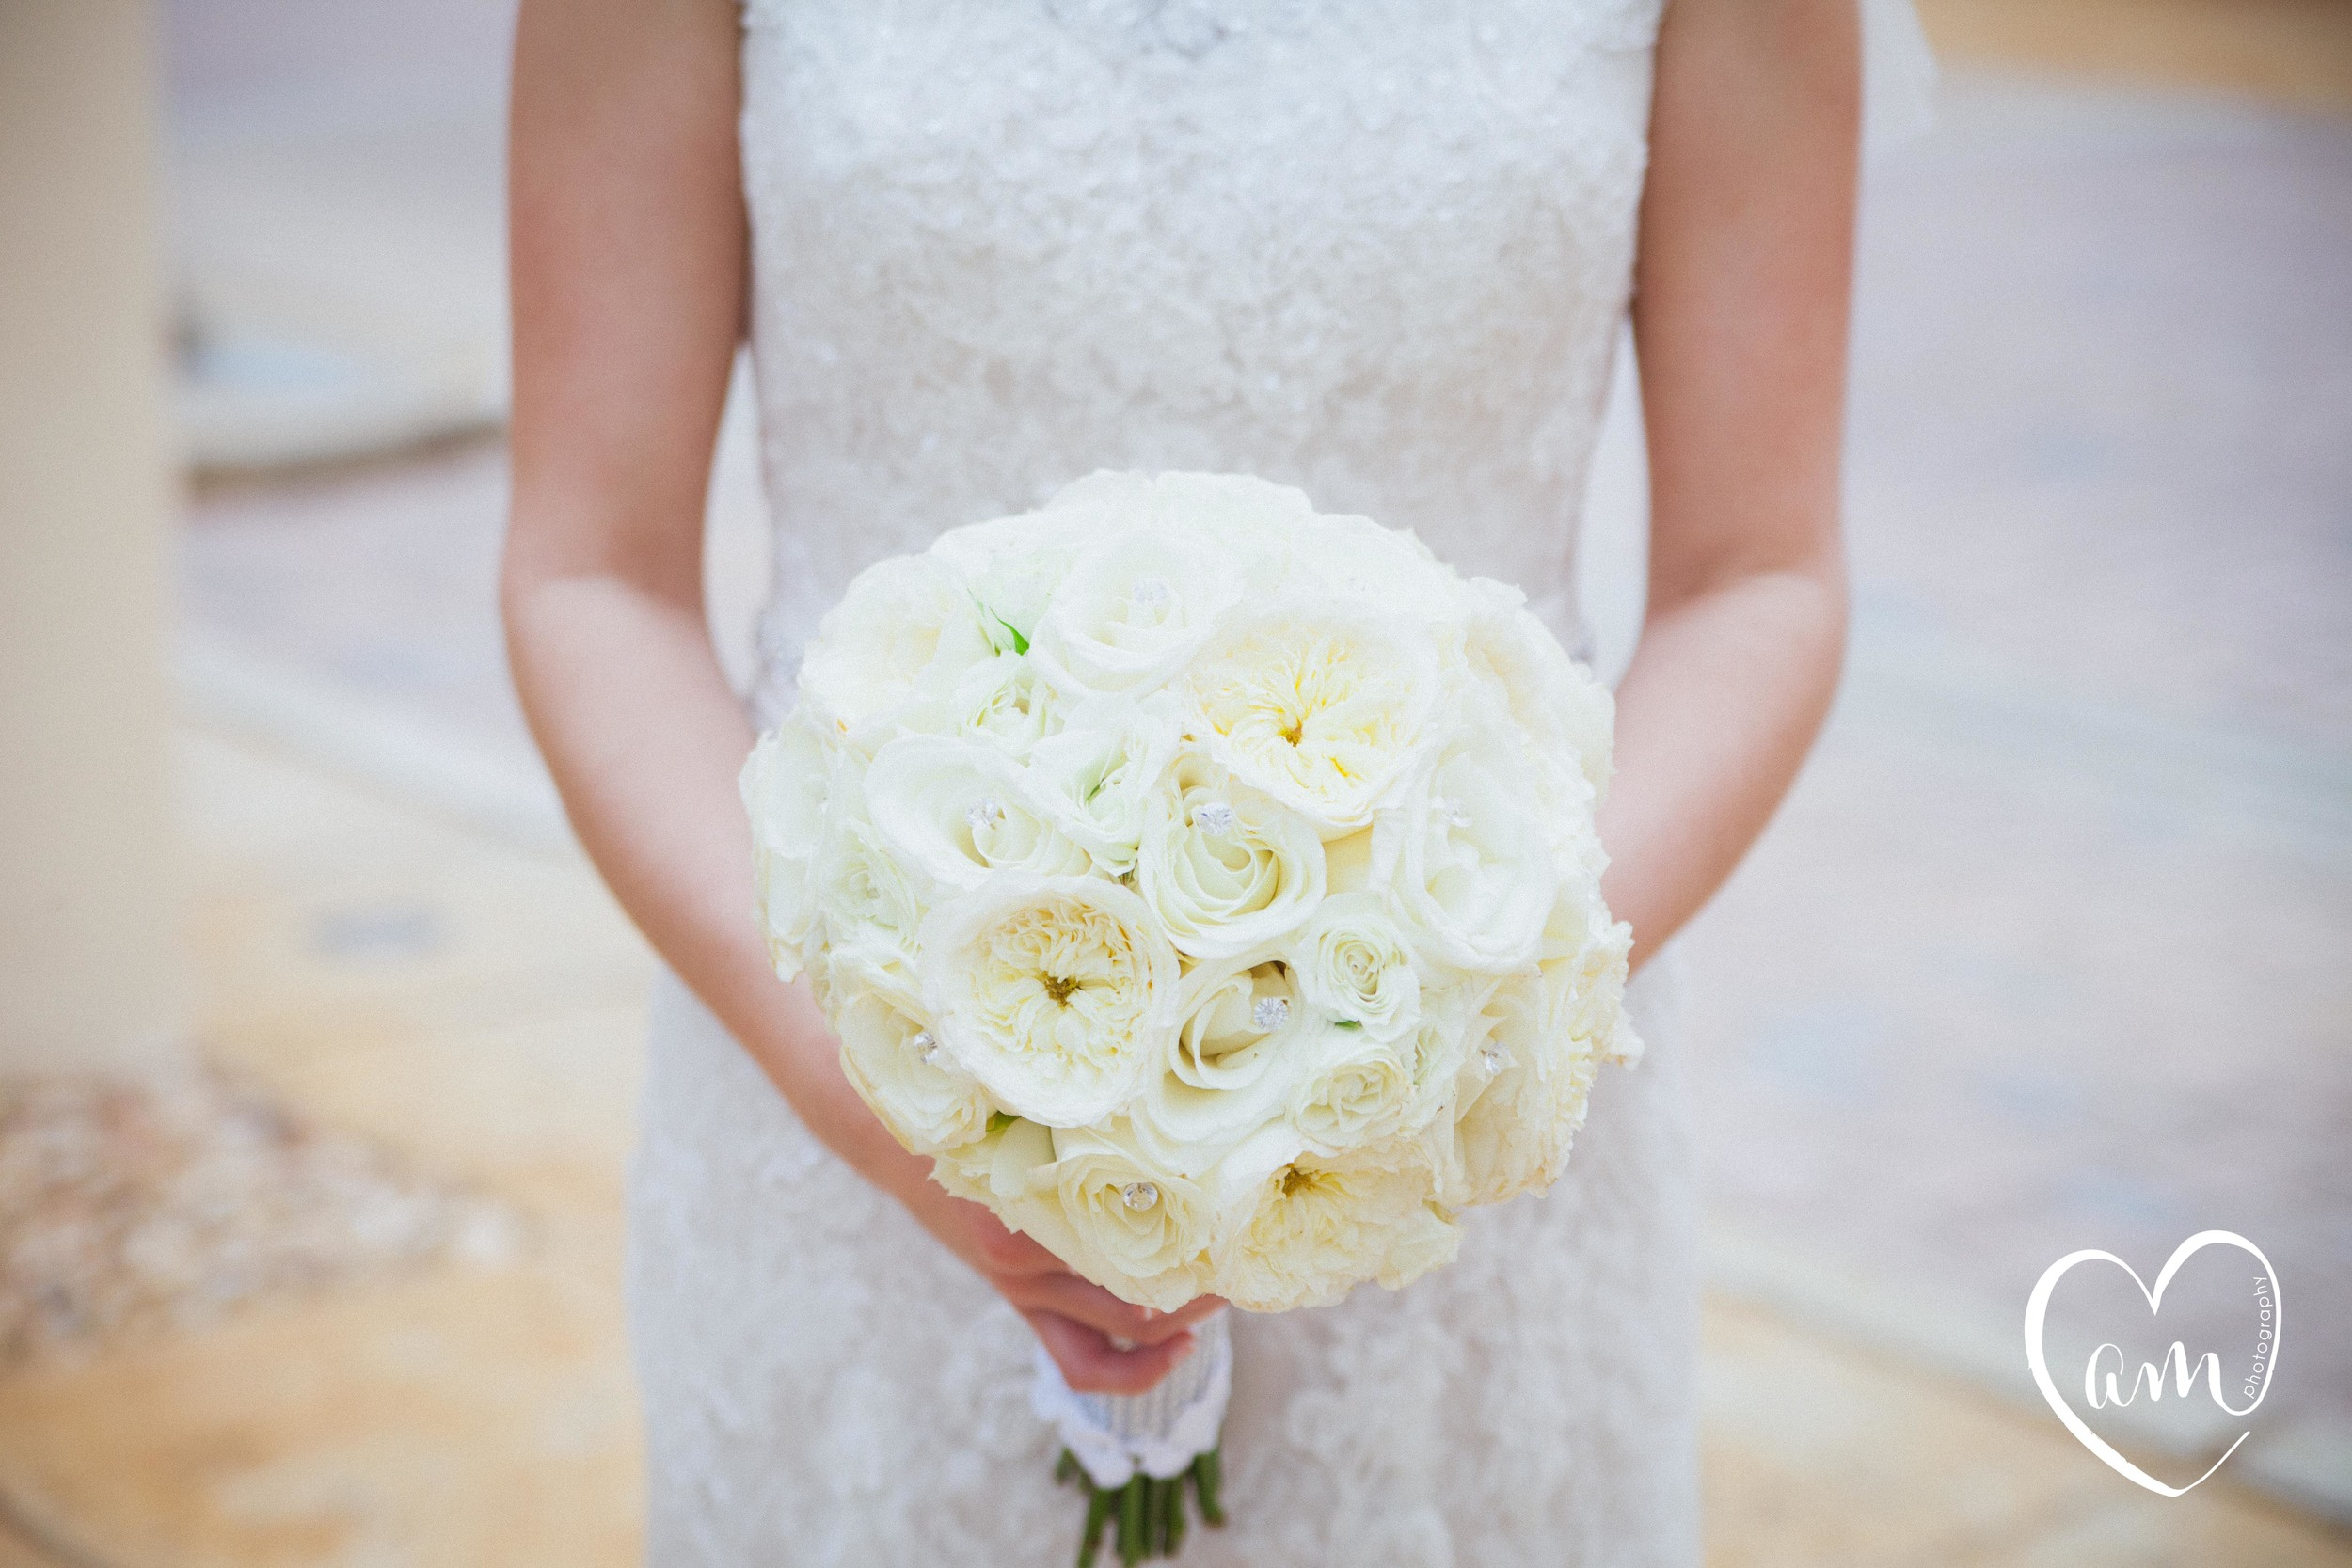 Bridal bouquet from an Orlando Florida wedding